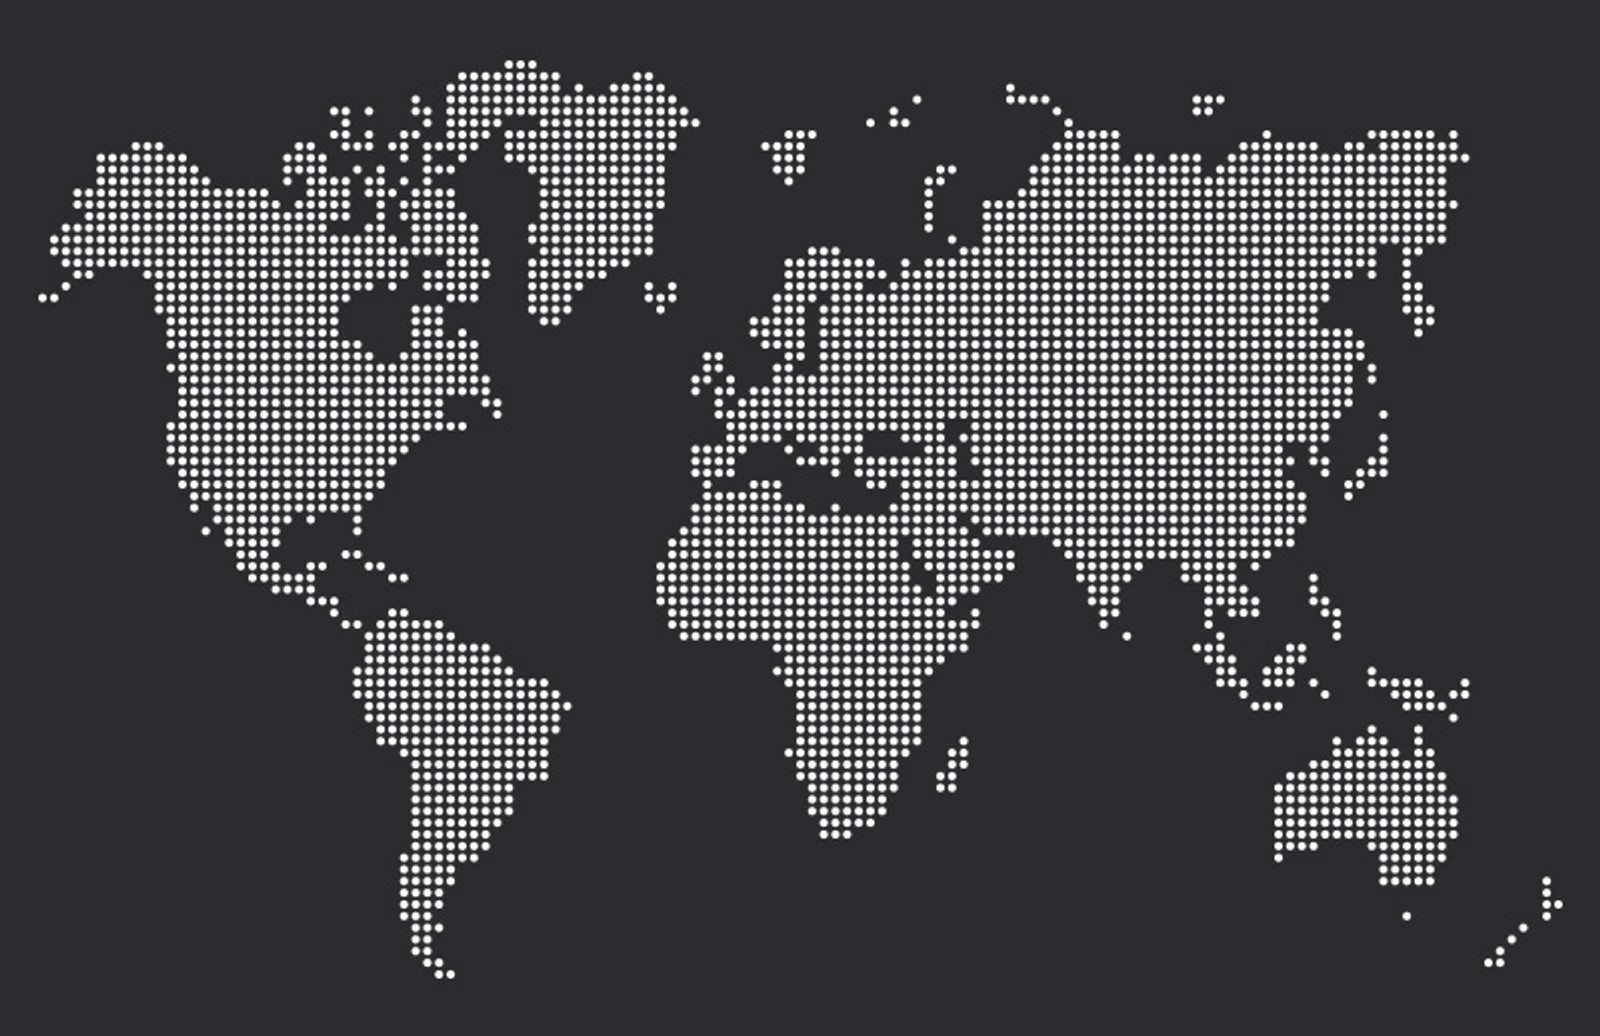 Dotted world map vectors medialoot dotted world map vectors preview 1 gumiabroncs Image collections